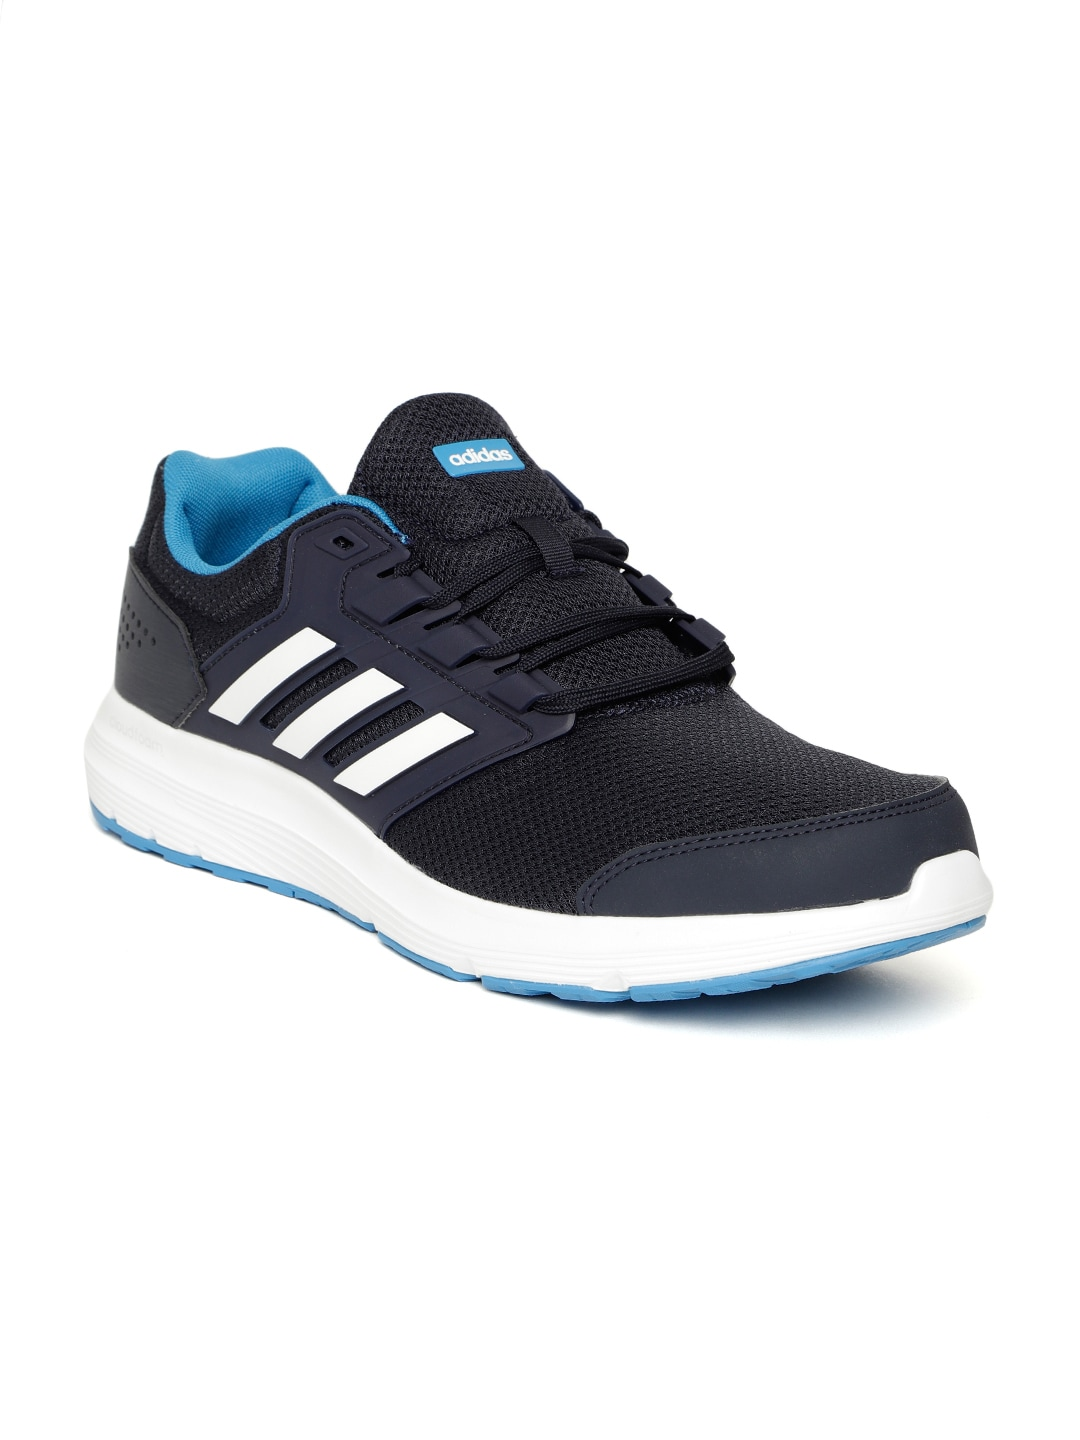 buy popular bc2c4 fdc6e Adidas Shoes - Buy Adidas Shoes for Men   Women Online - Myntra